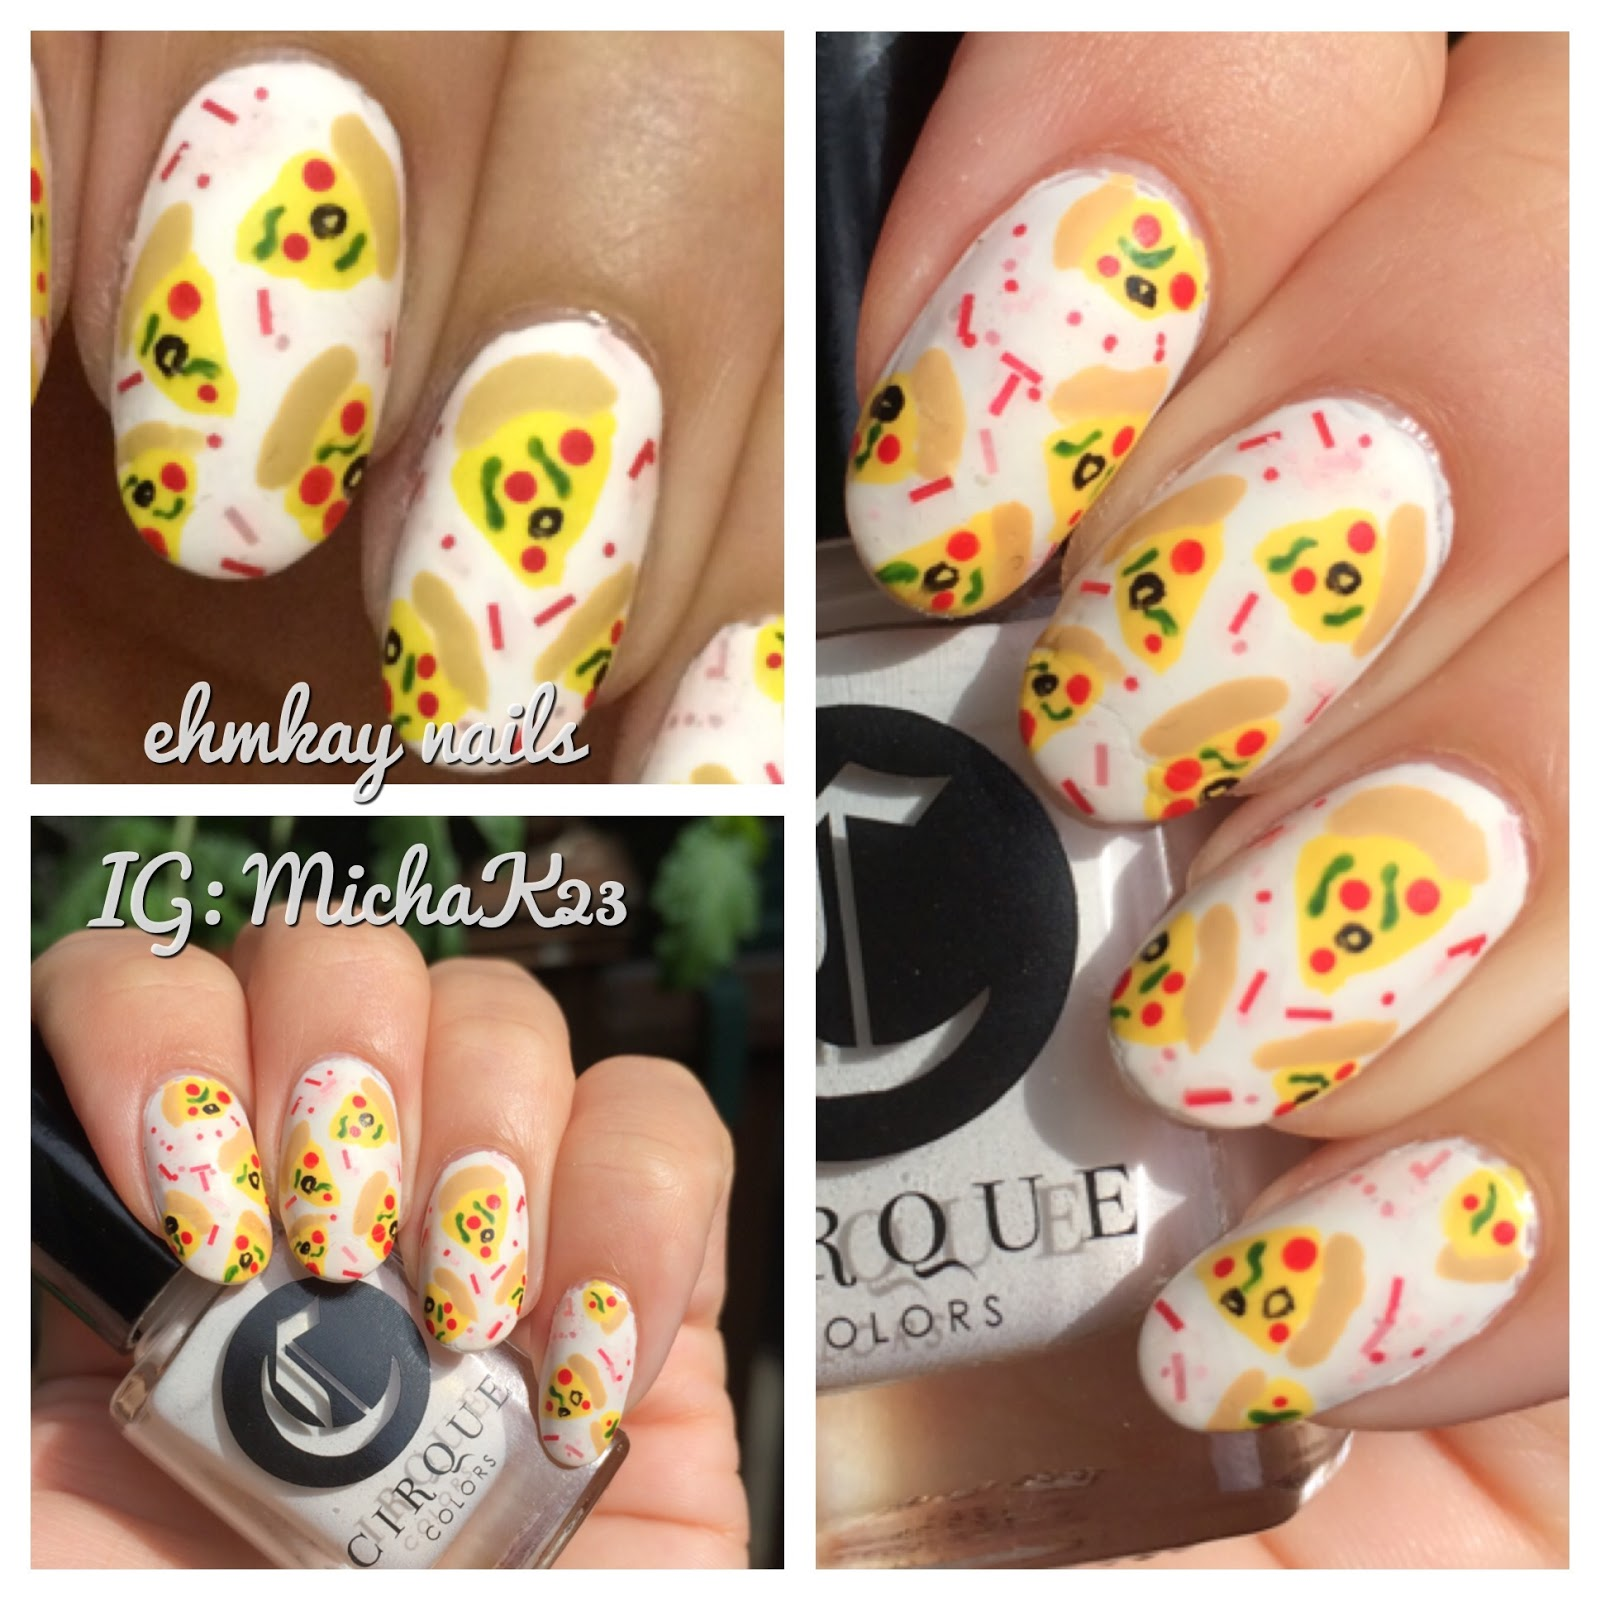 ehmkay nails: Pizza Party Nail Art with Cirque Colors